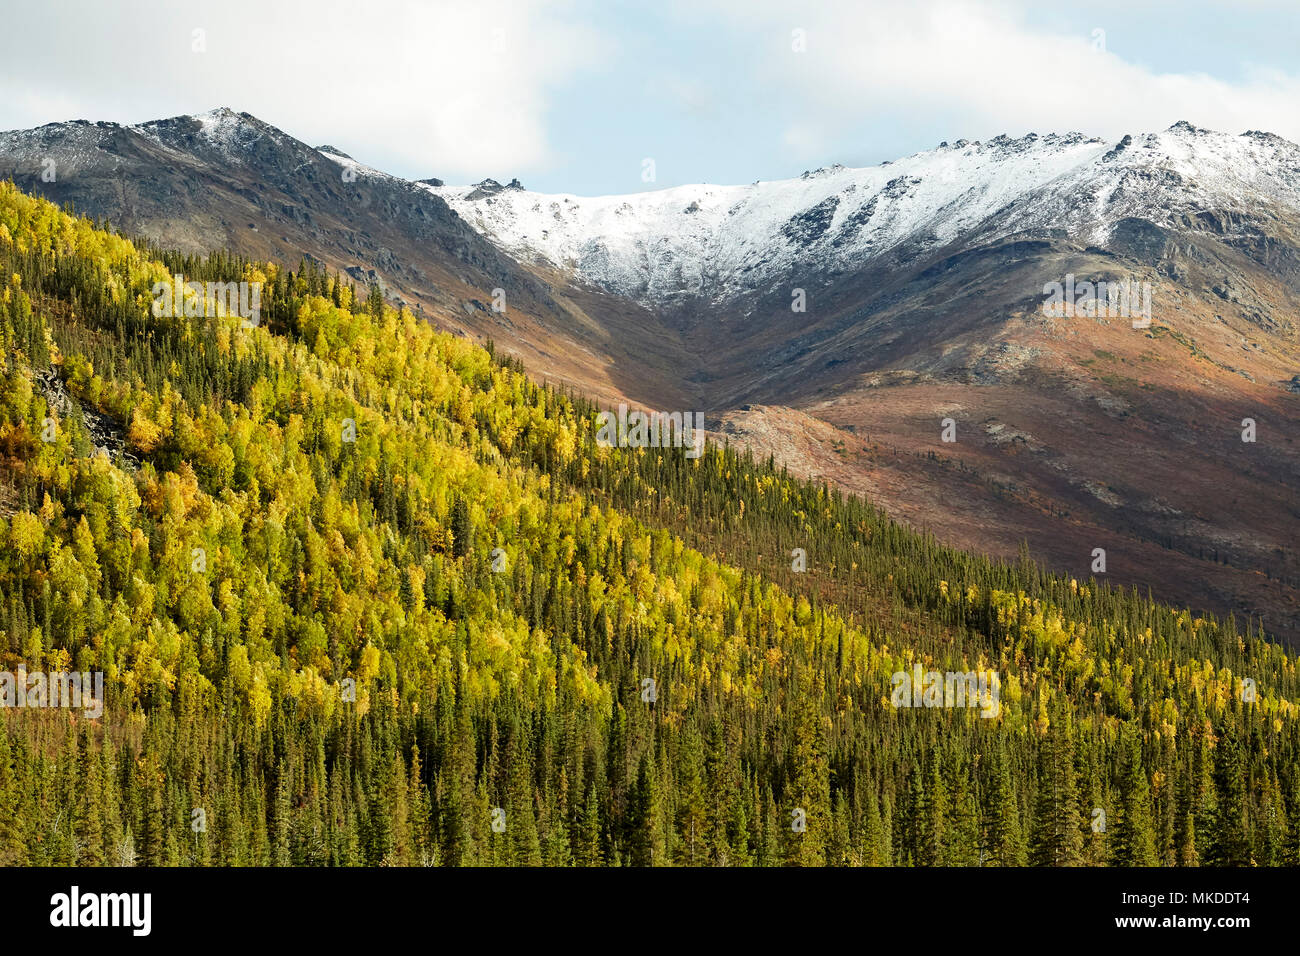 Dalton Highway : from Fairbanks to Prudhoe Bay, The forest of white spruces in autumn near the chain of Brooks, Alaska, USA - Stock Image